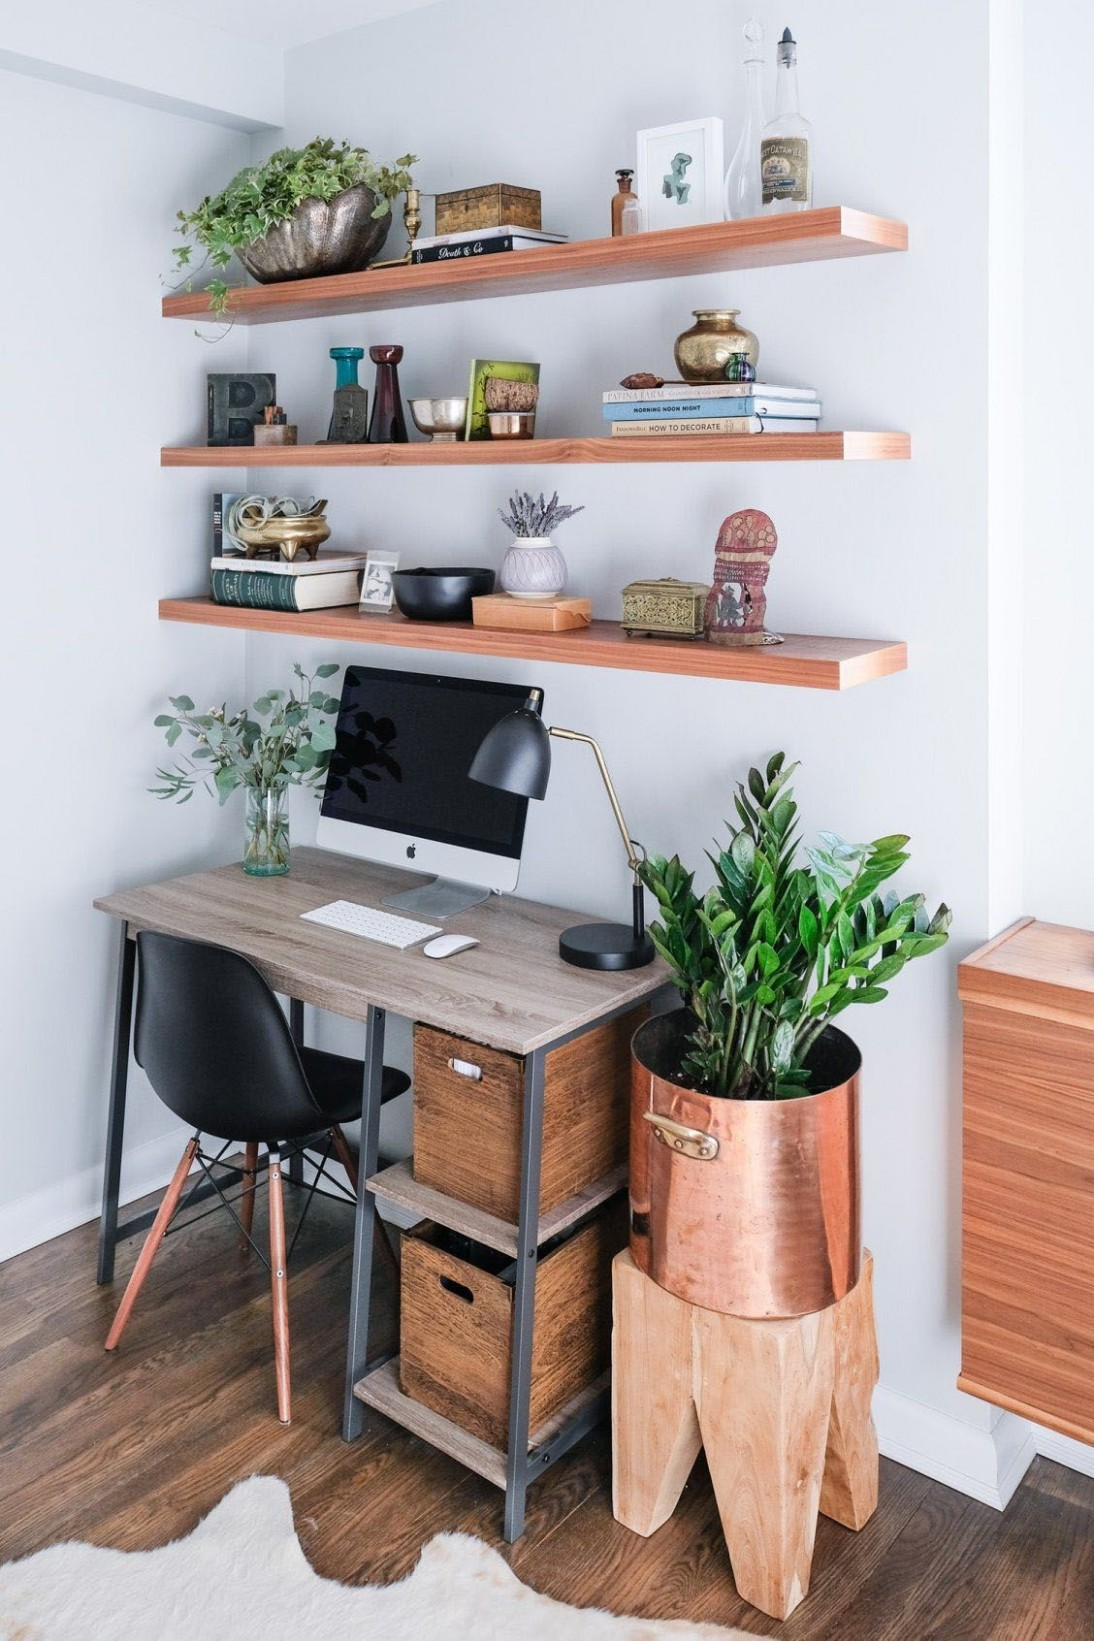 Cool home office ideas youtube exclusive on interioropedia home  - Home Office Ideas Youtube